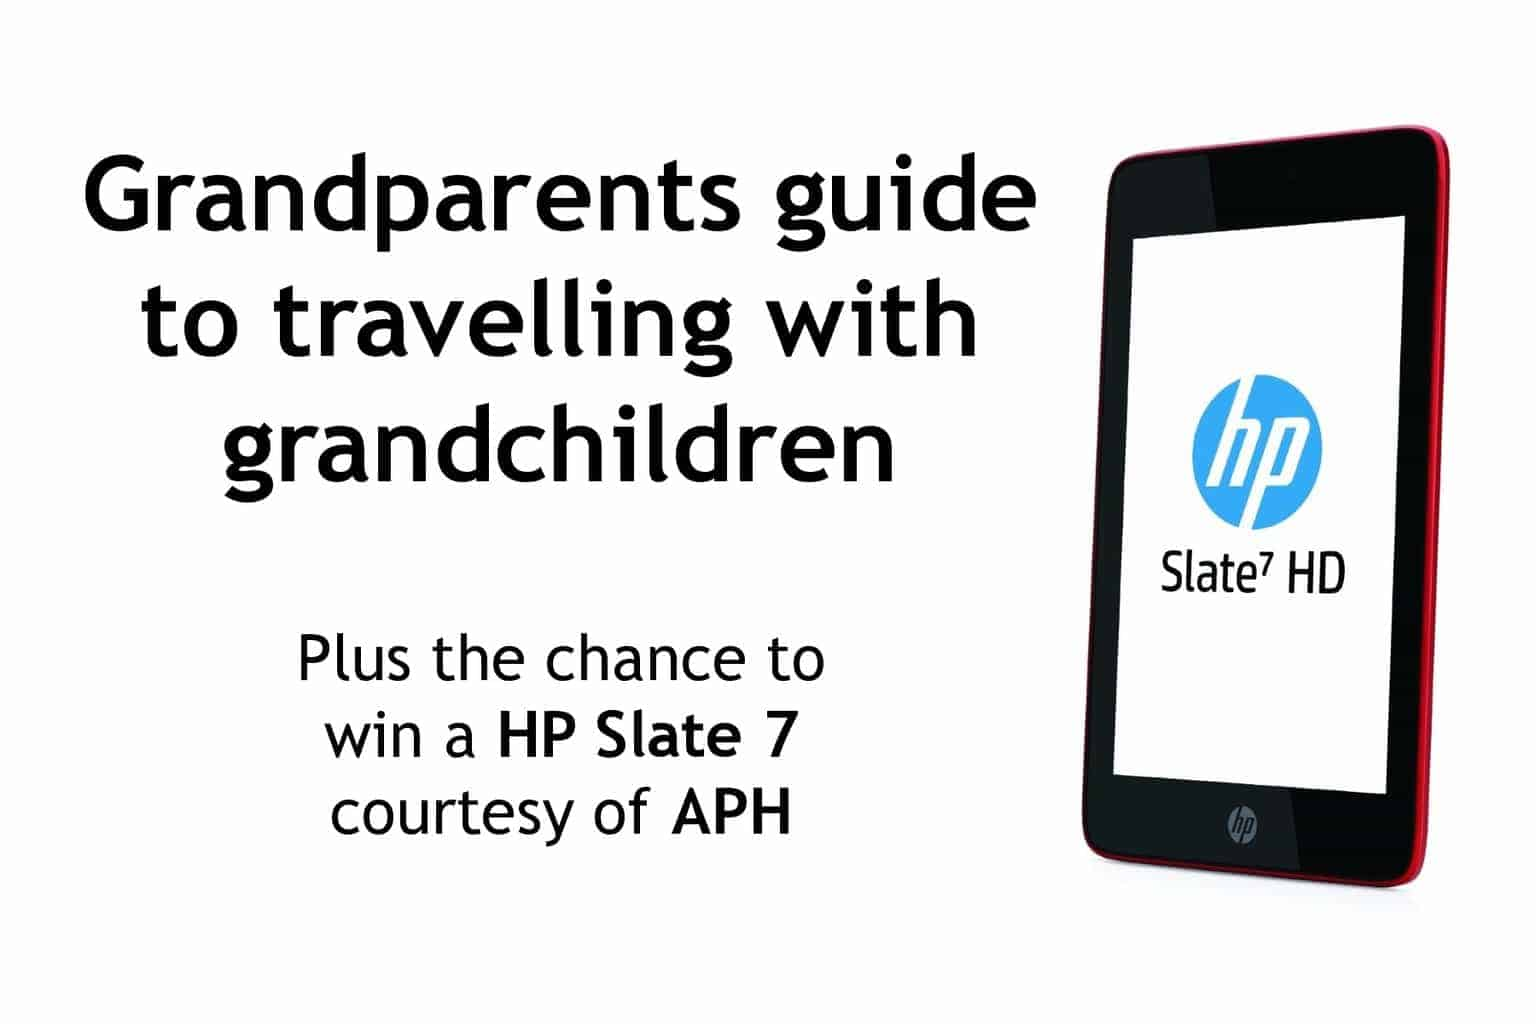 grandparents guide to travelling with grandchildren